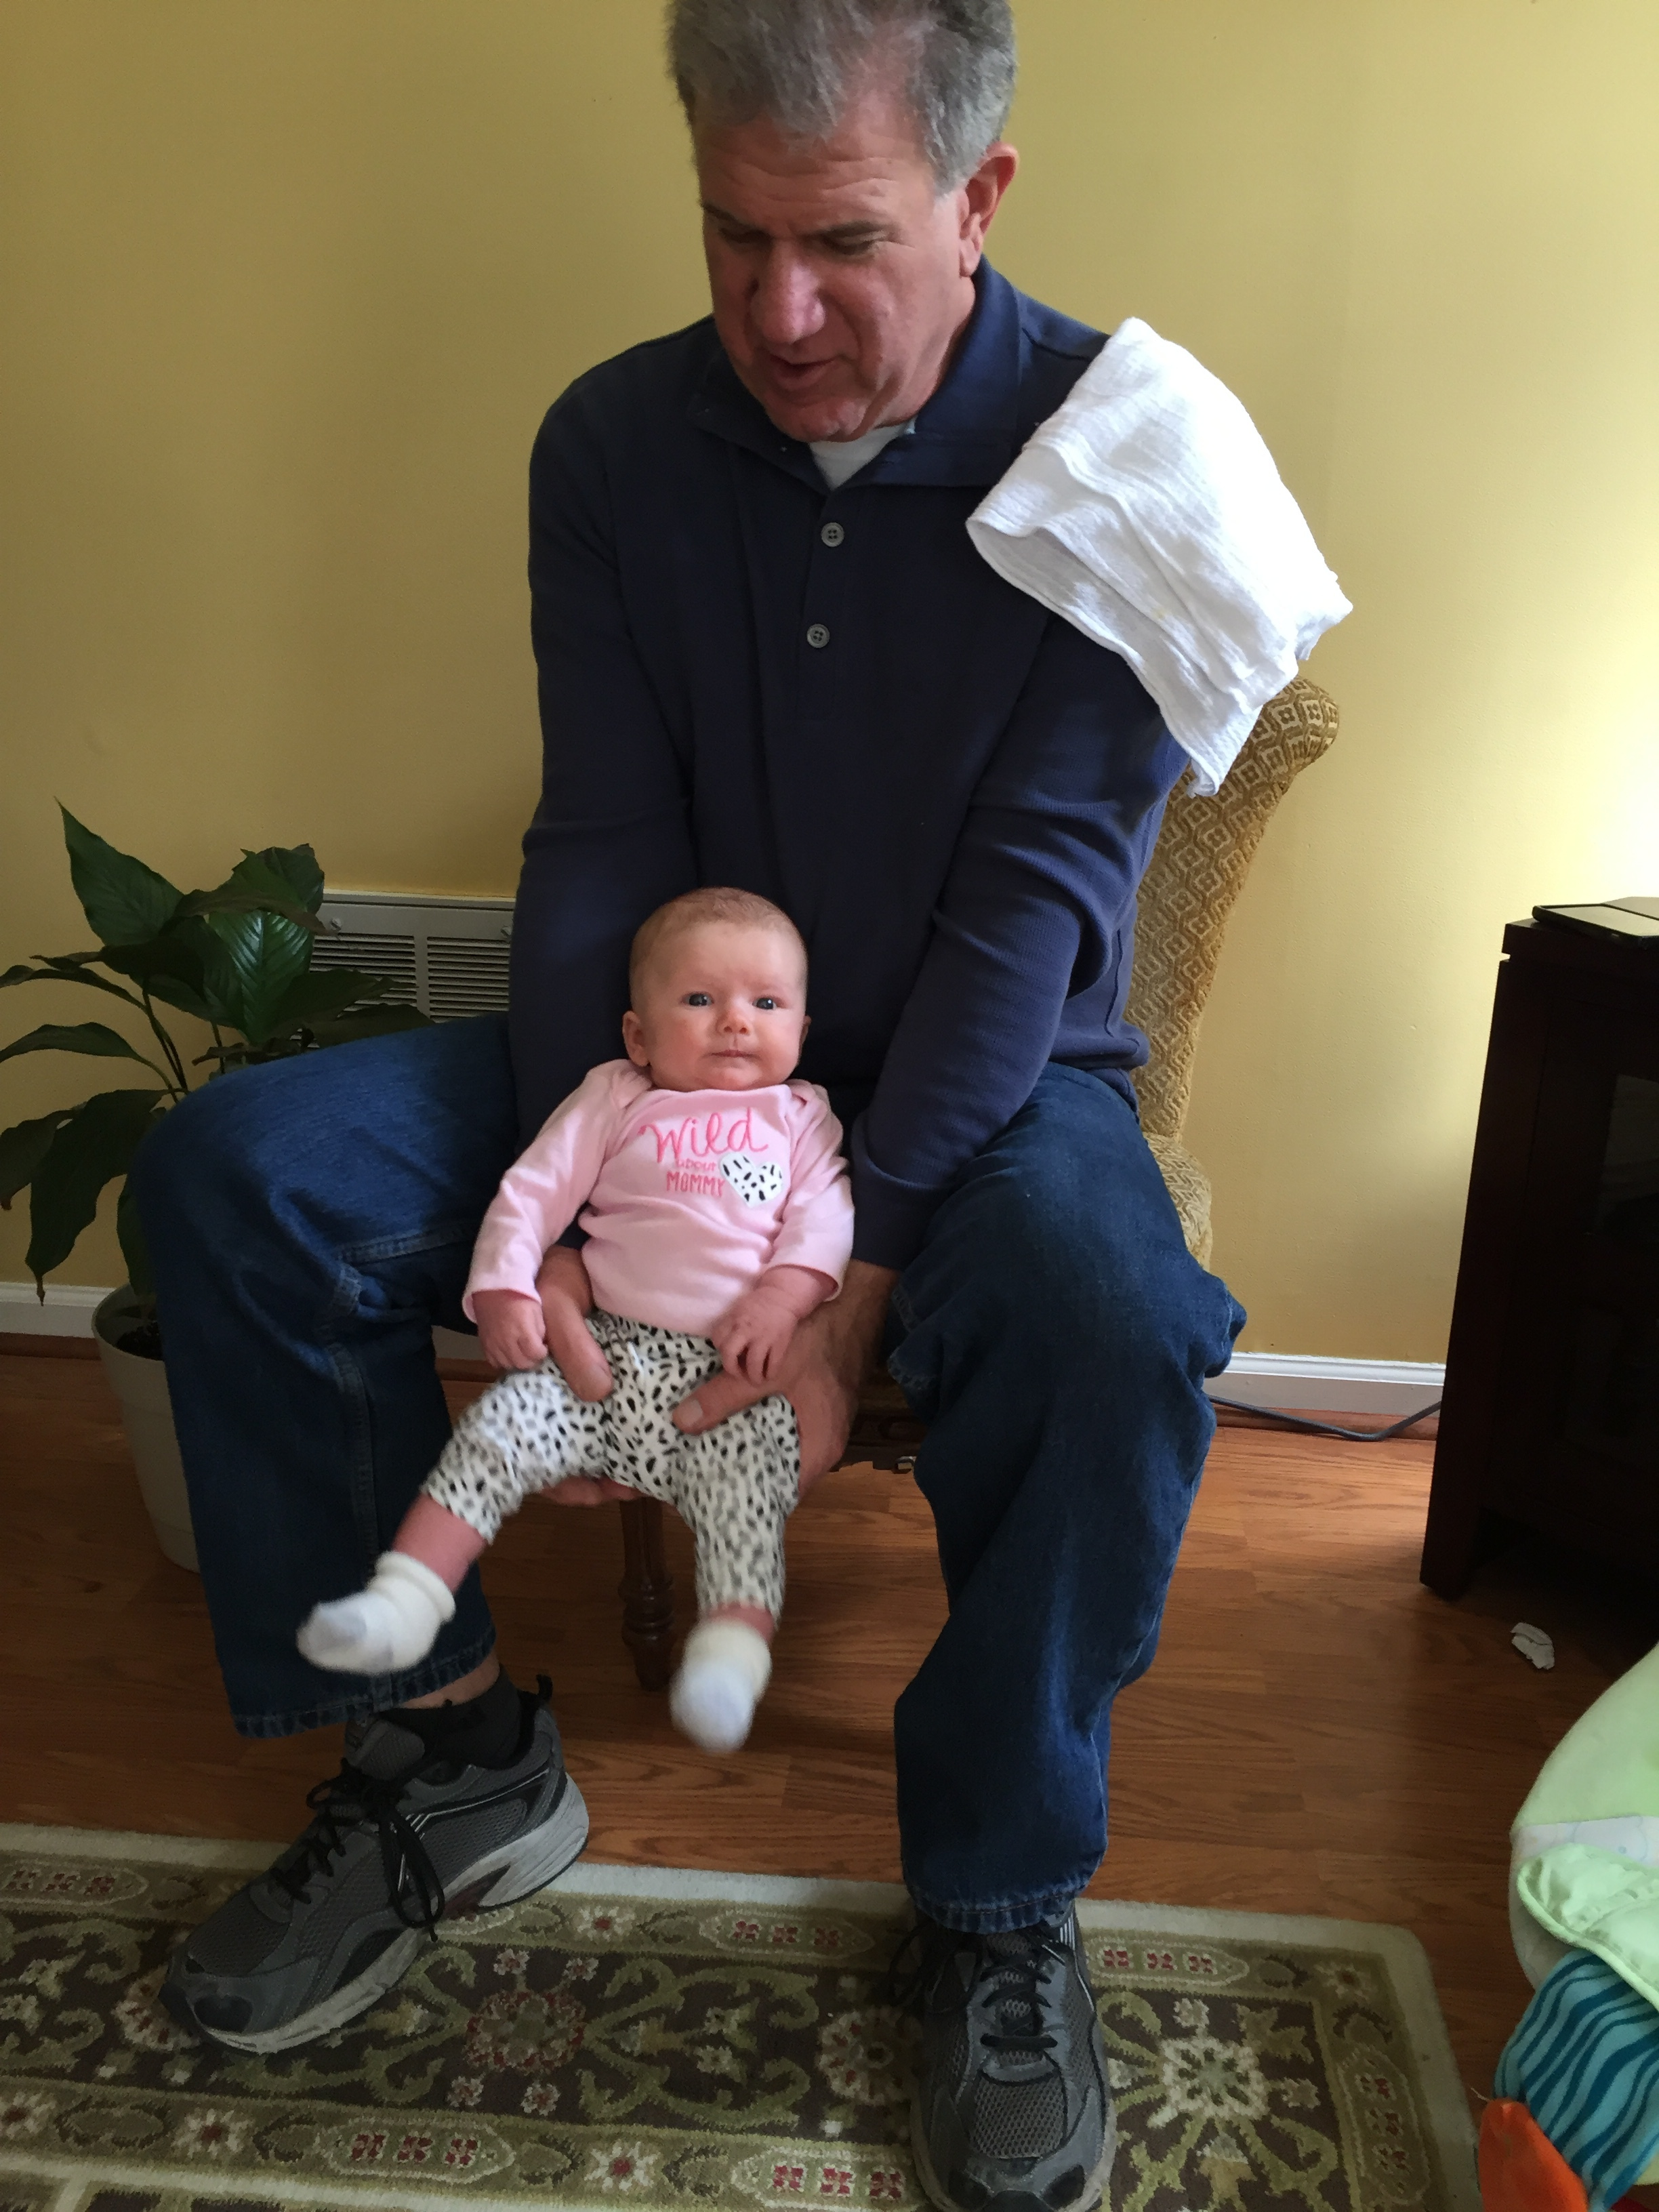 March, 2016: My Godfather, Terry, visiting me in Charlotte, NC and meeting Abigale when she was about 5 weeks old.